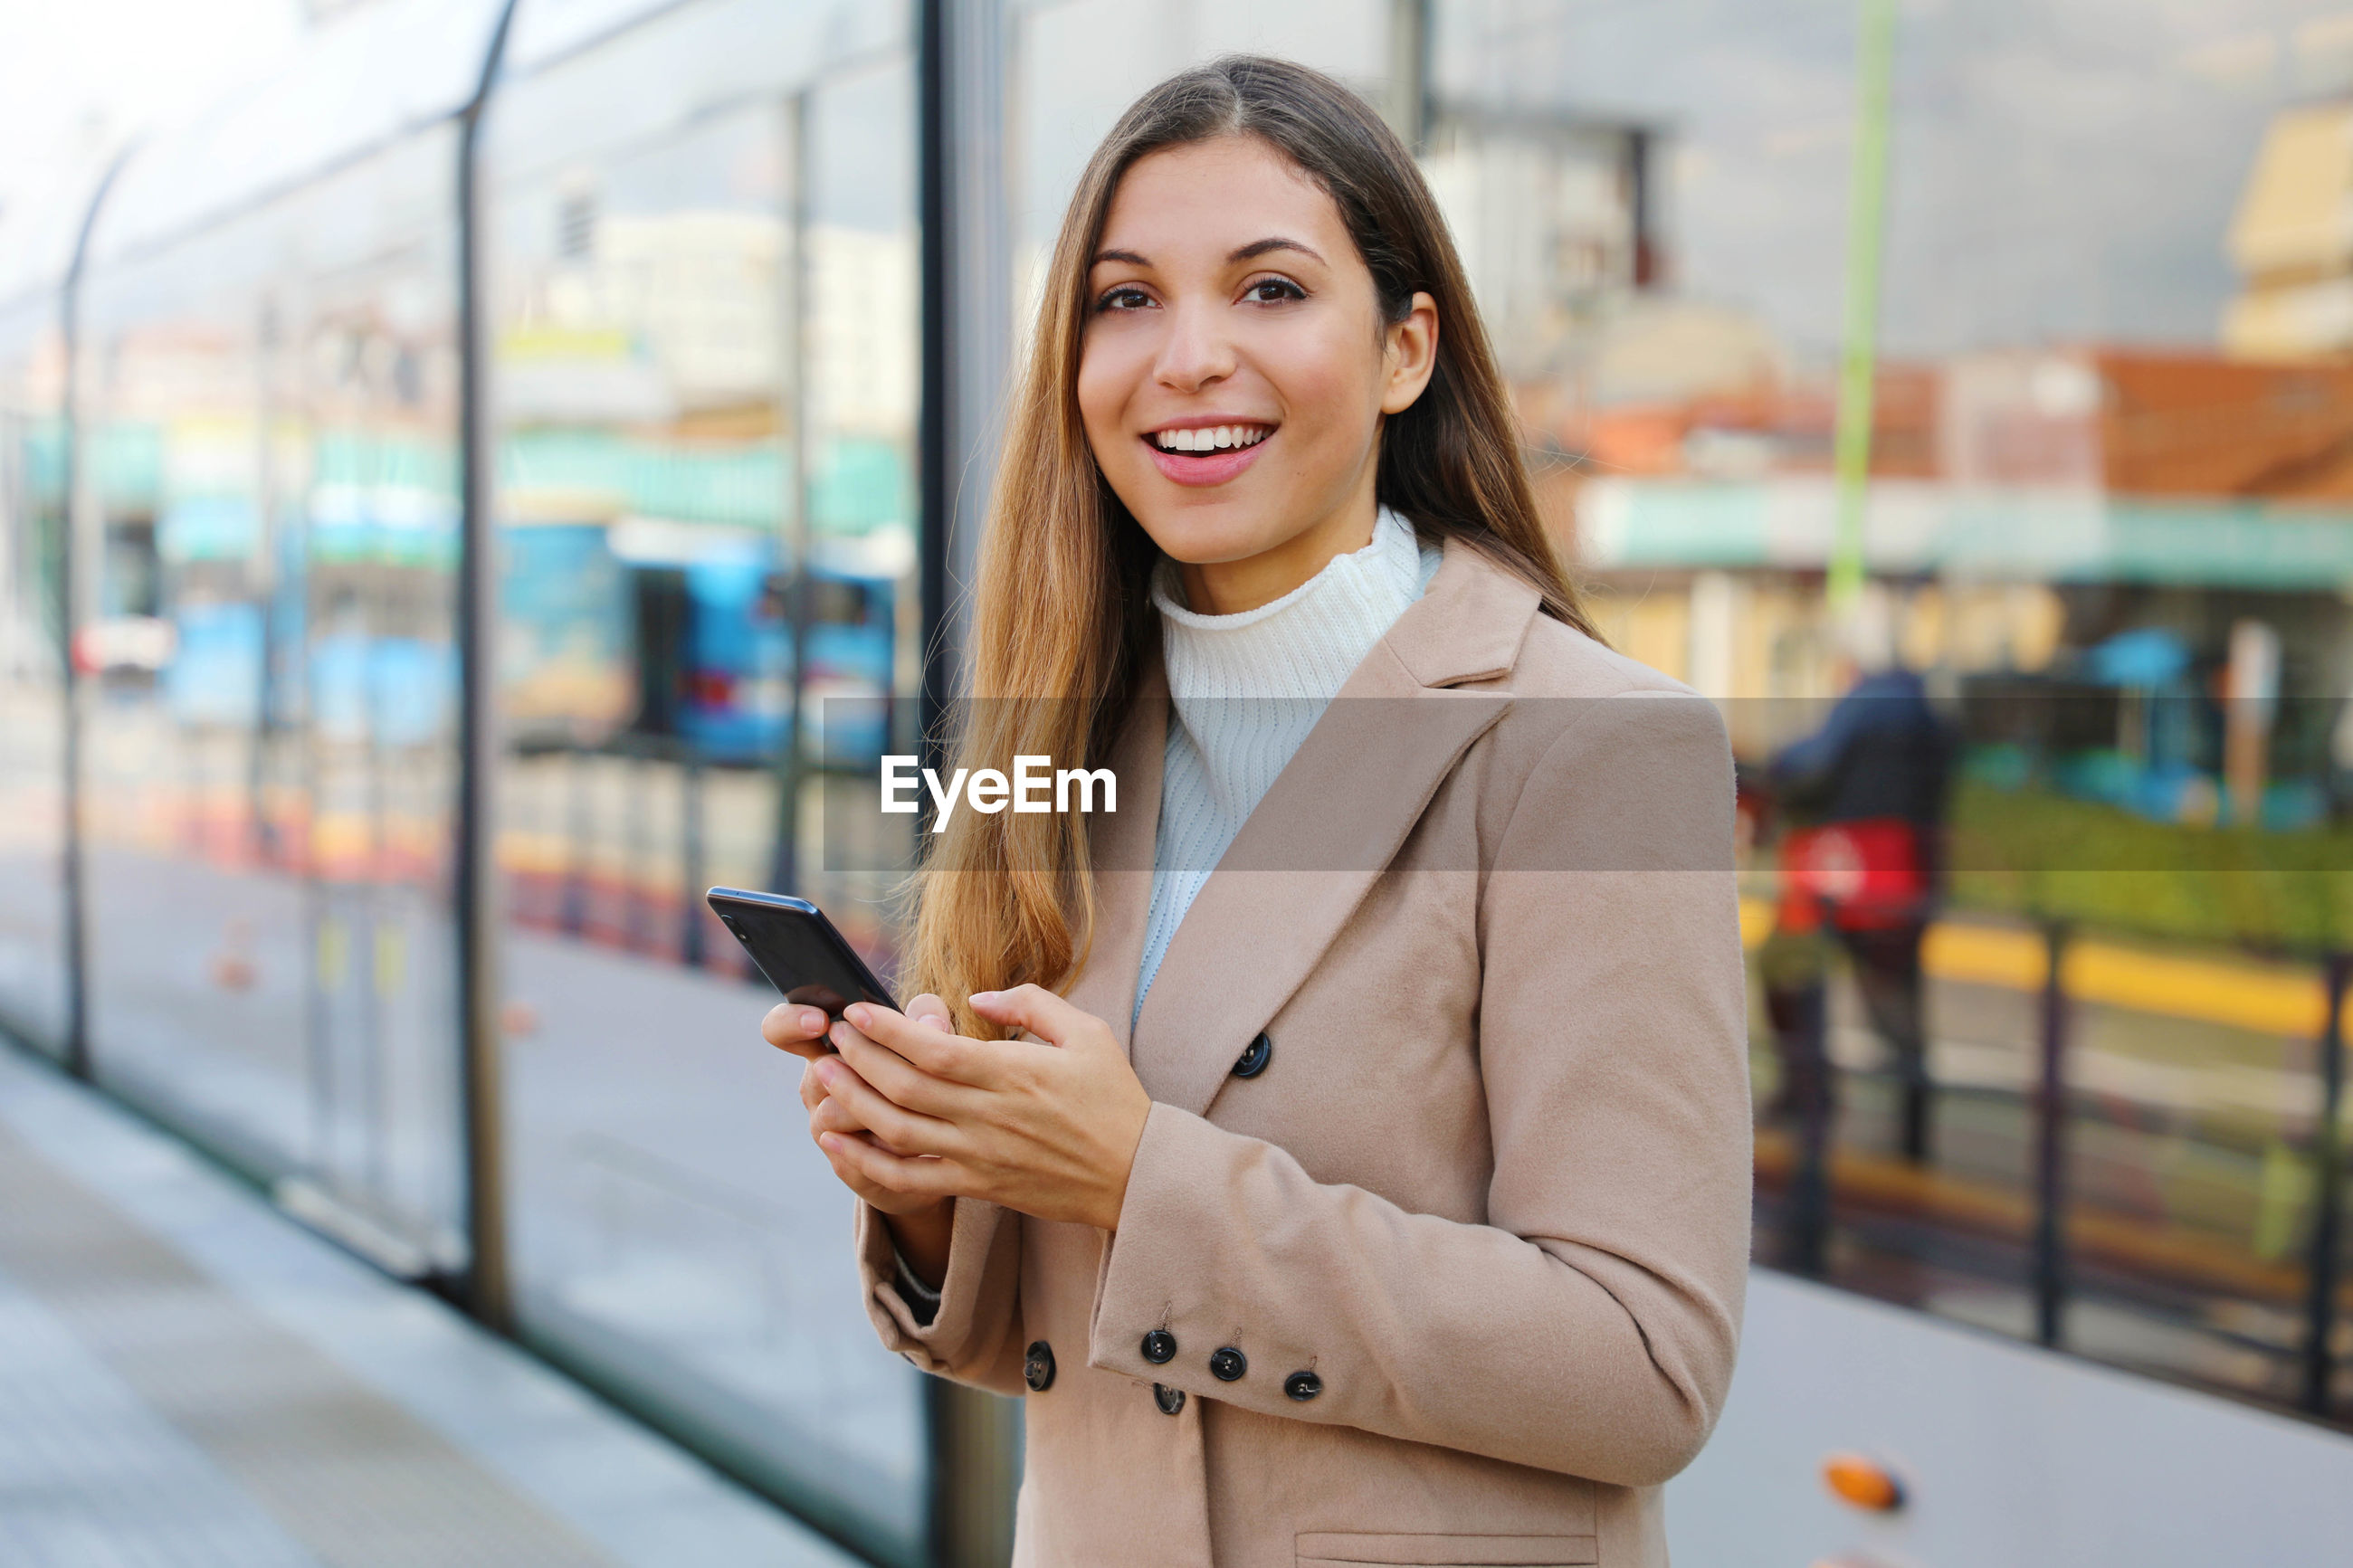 Portrait of happy young woman using phone while standing against train at railroad station